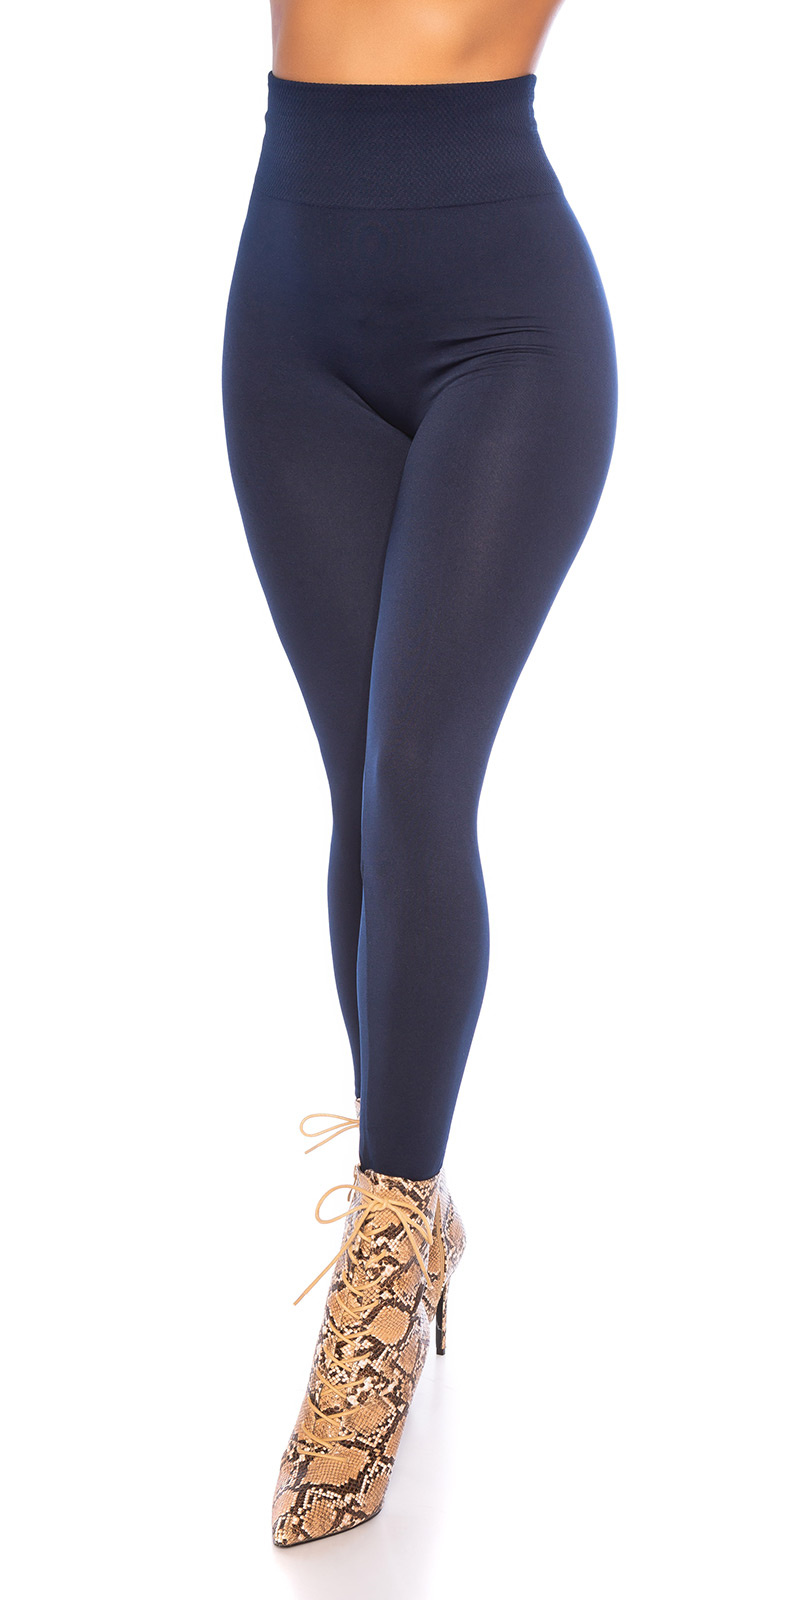 Sexy shaping leggings glossy marineblauw